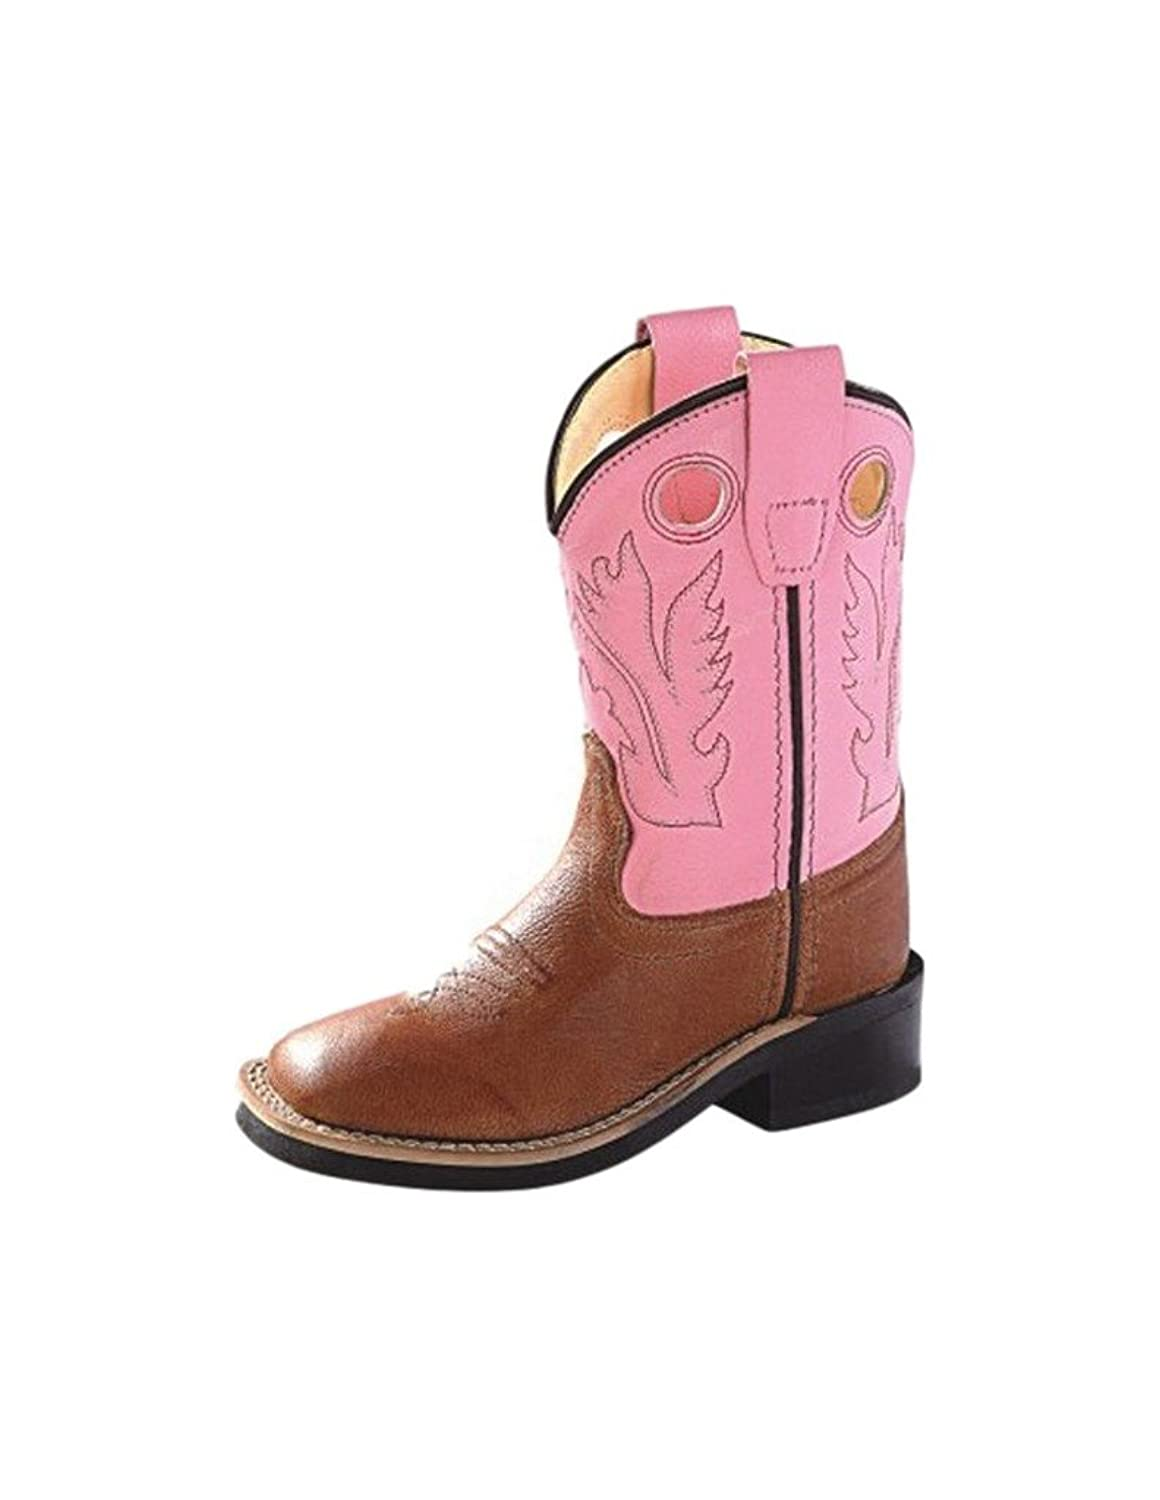 0f800b59648 Old West Toddler-Girls' Cowgirl Boot Square Toe - Bsi1839